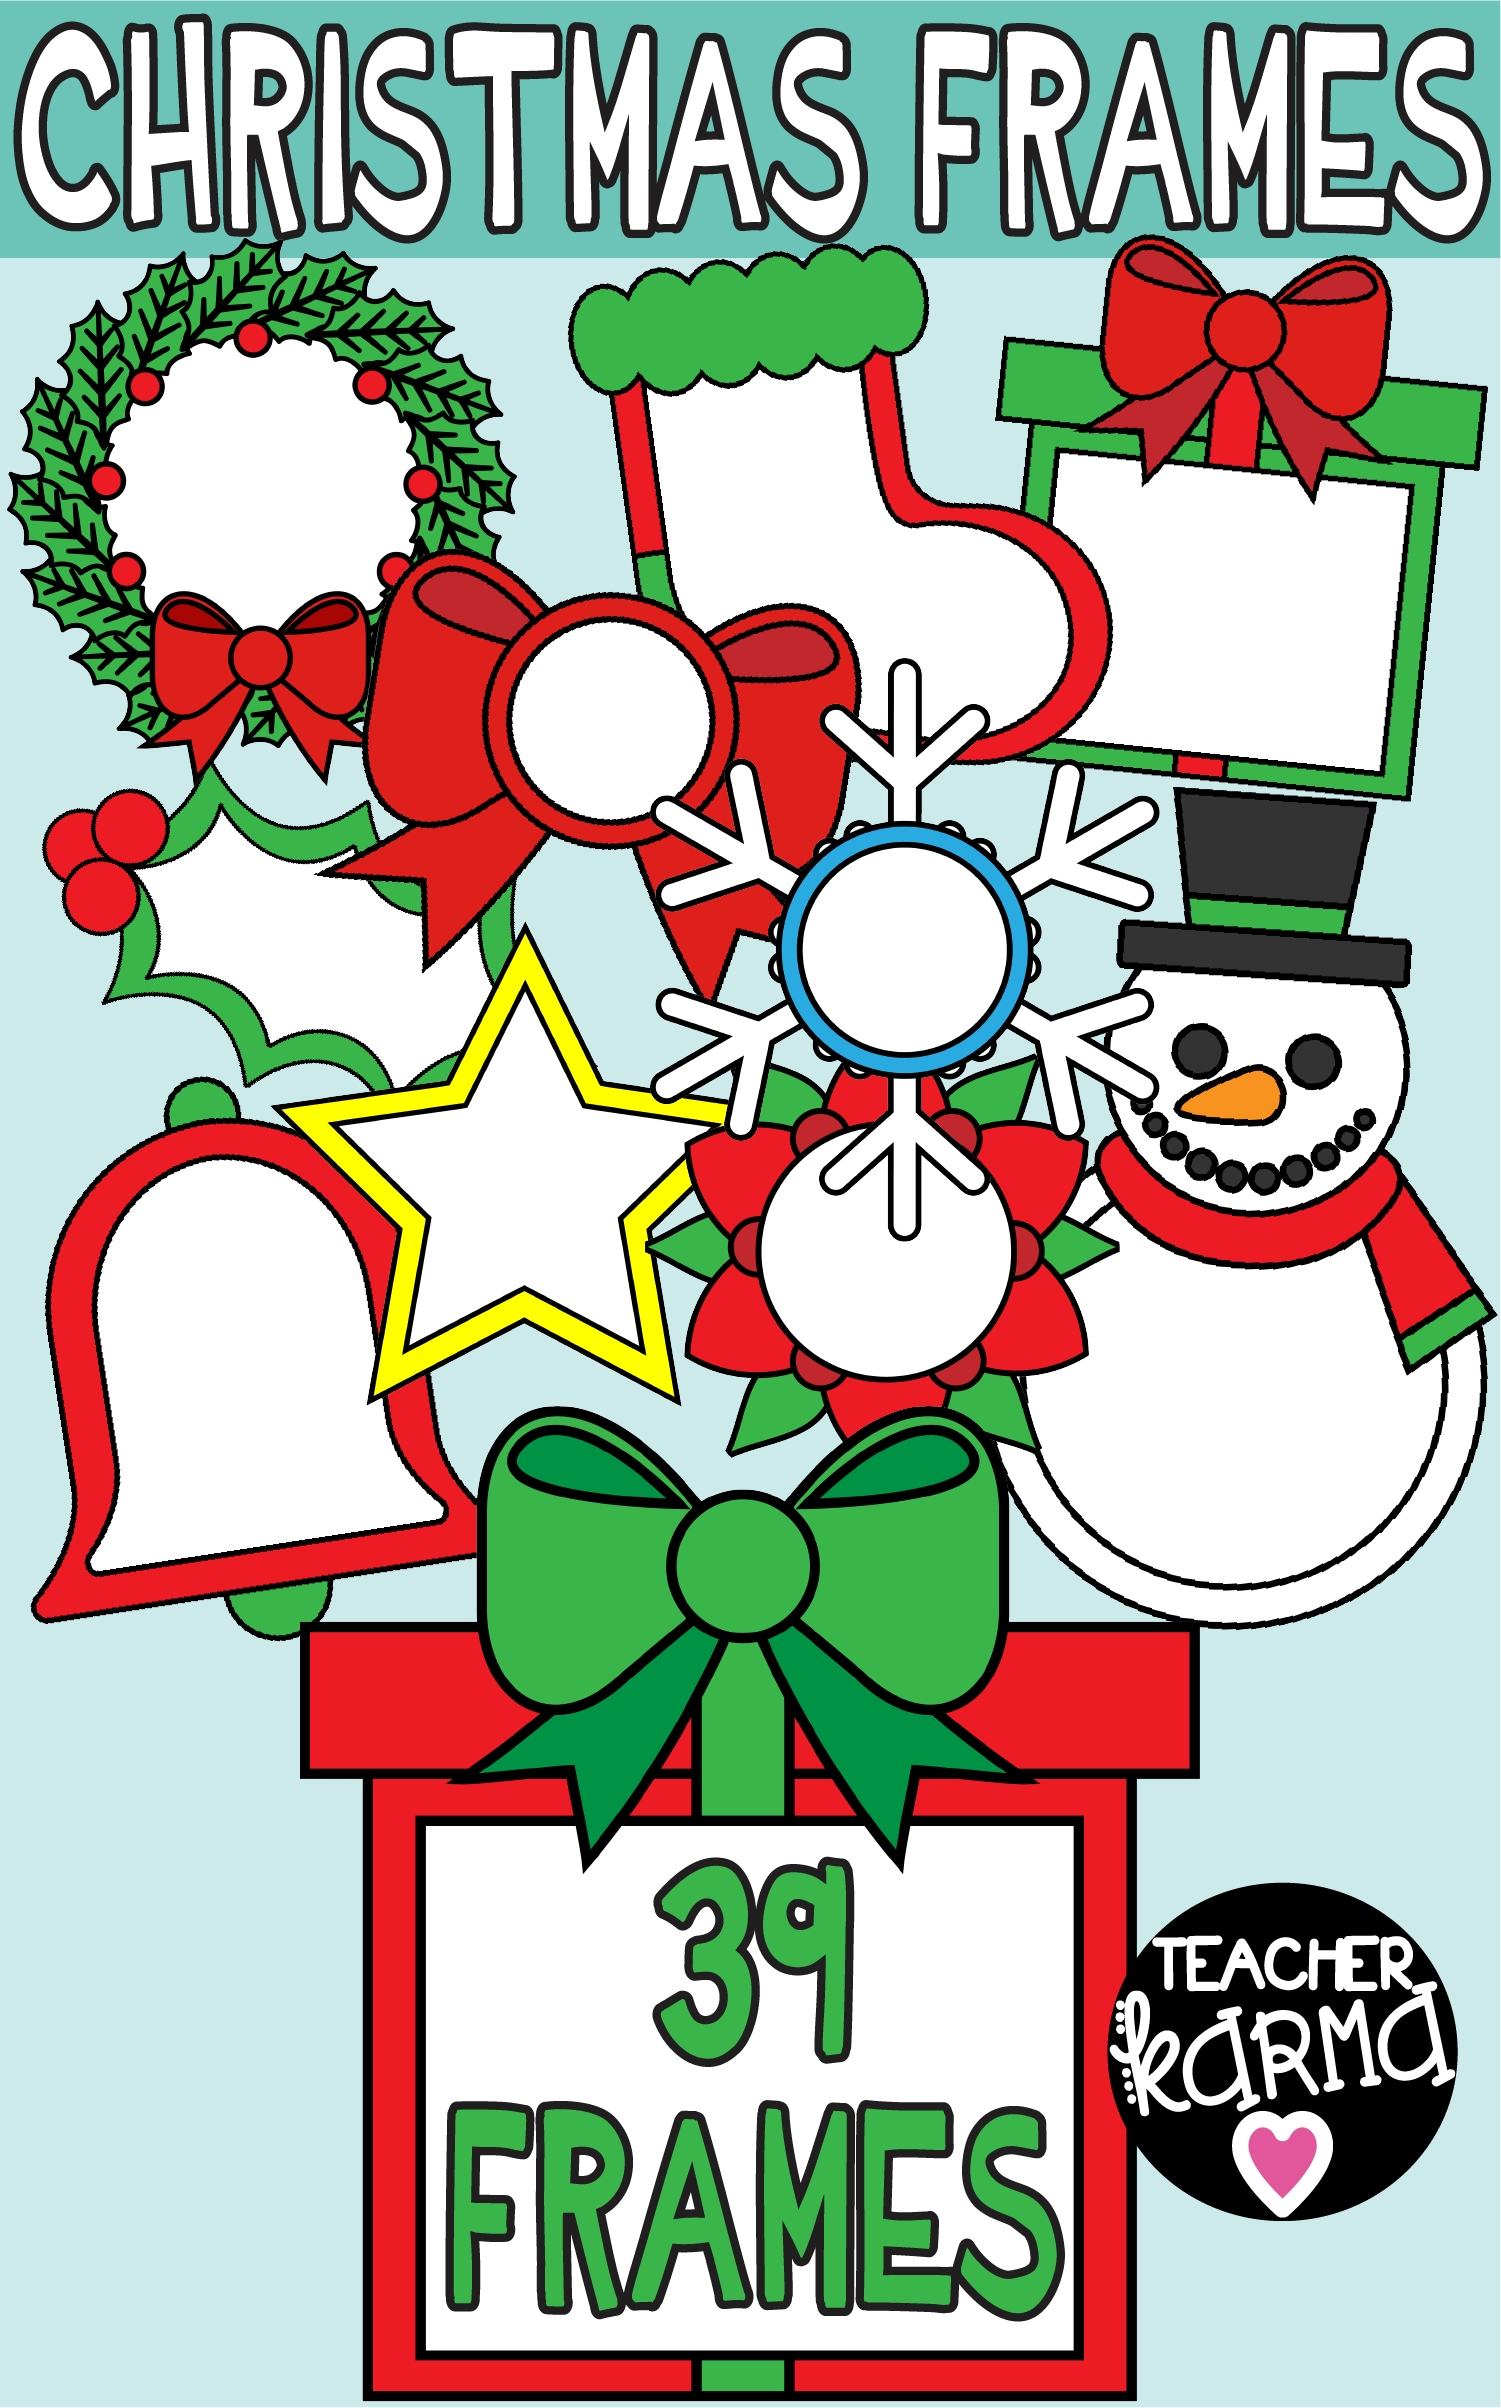 small resolution of christmas frames clipart is perfect for your holiday resources these graphics work for tpt sellers